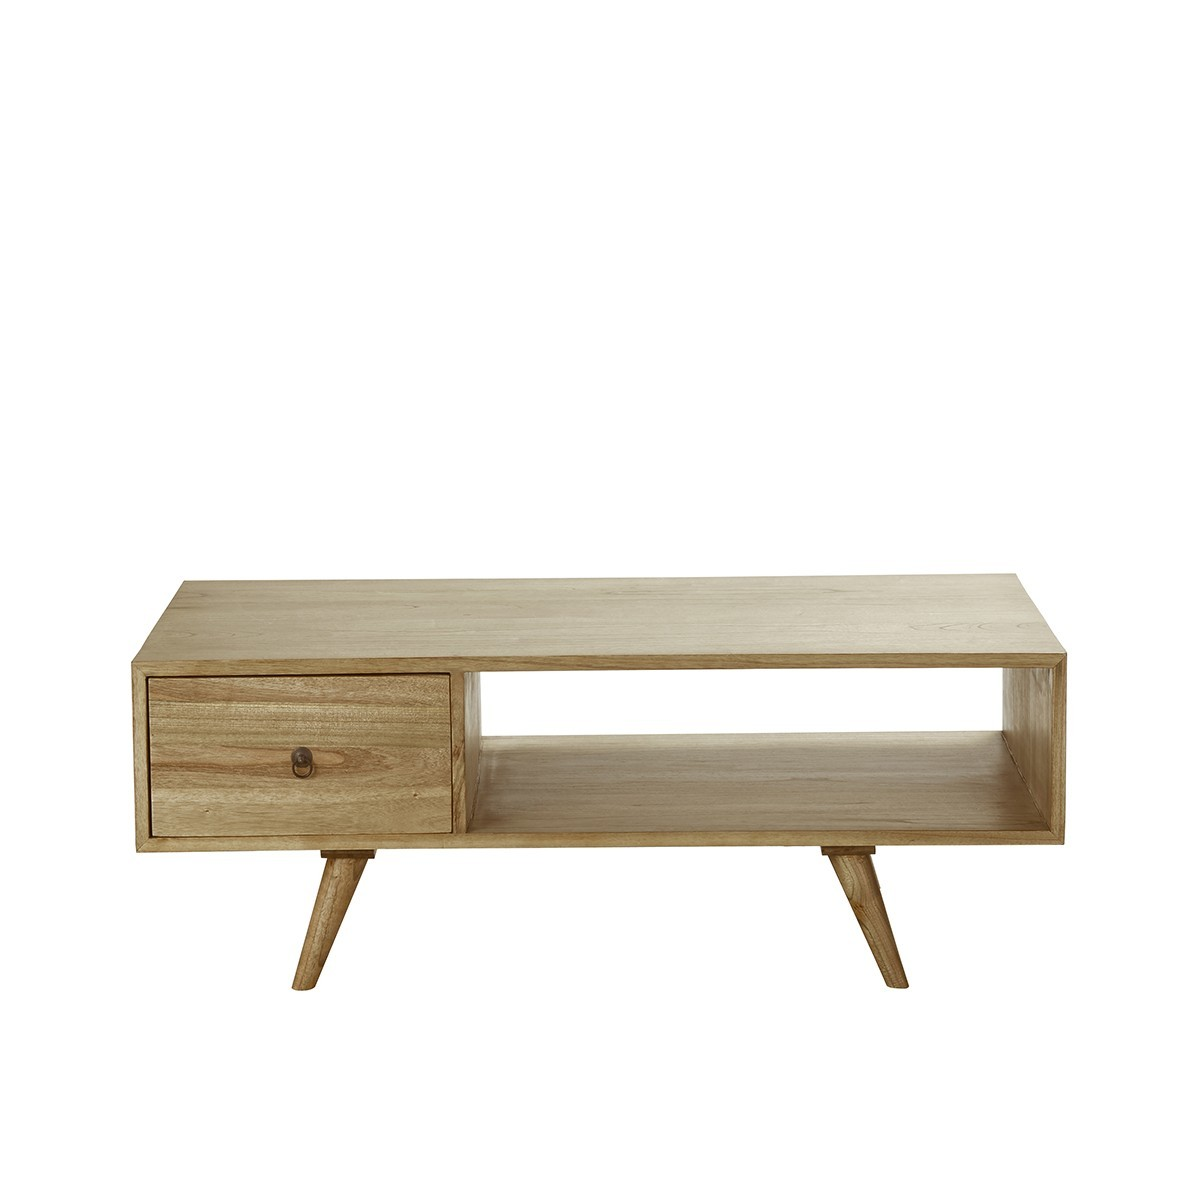 Table basse scandinave 1 tiroir en mindy